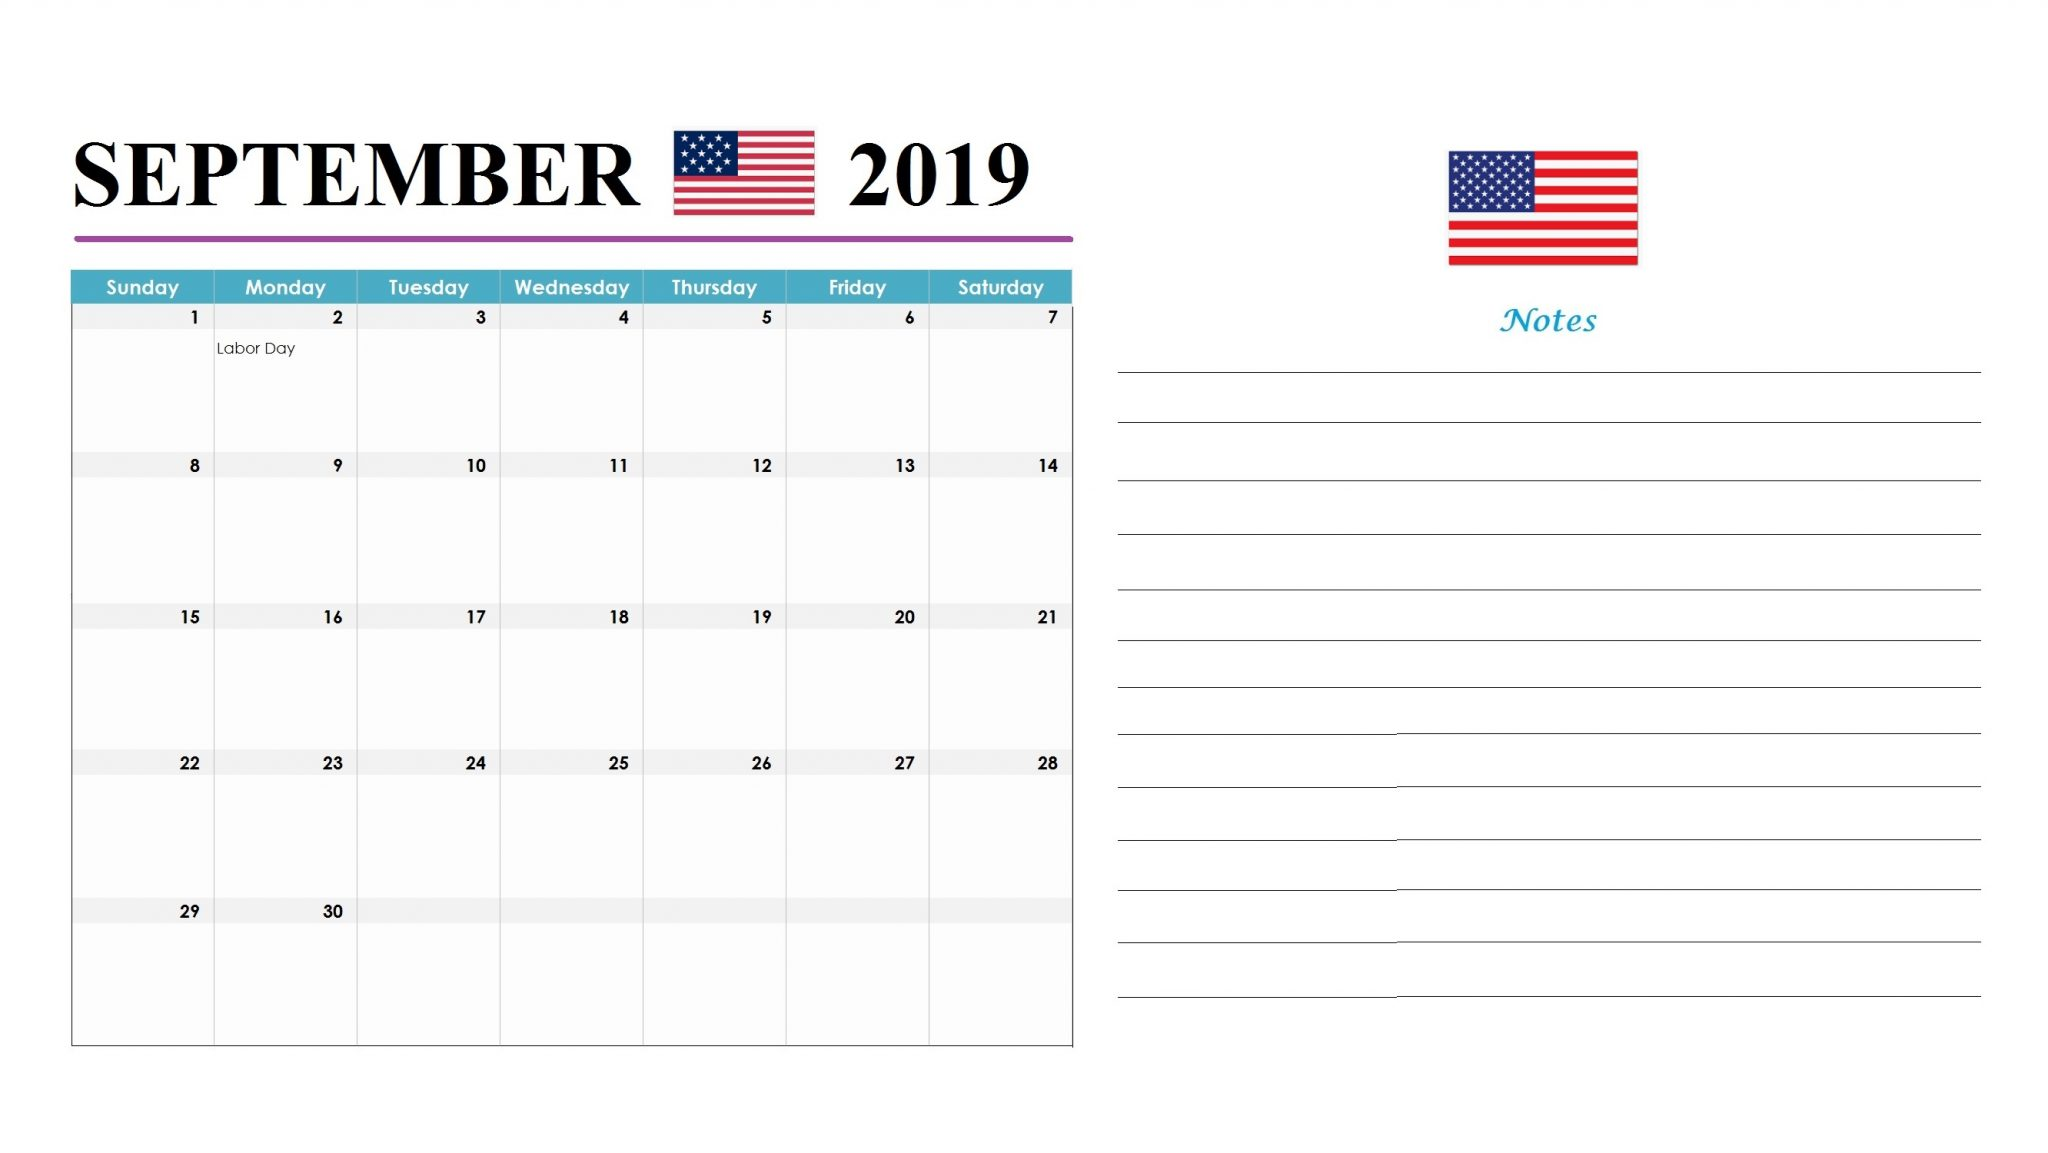 September 2019 United States Holidays Calendar